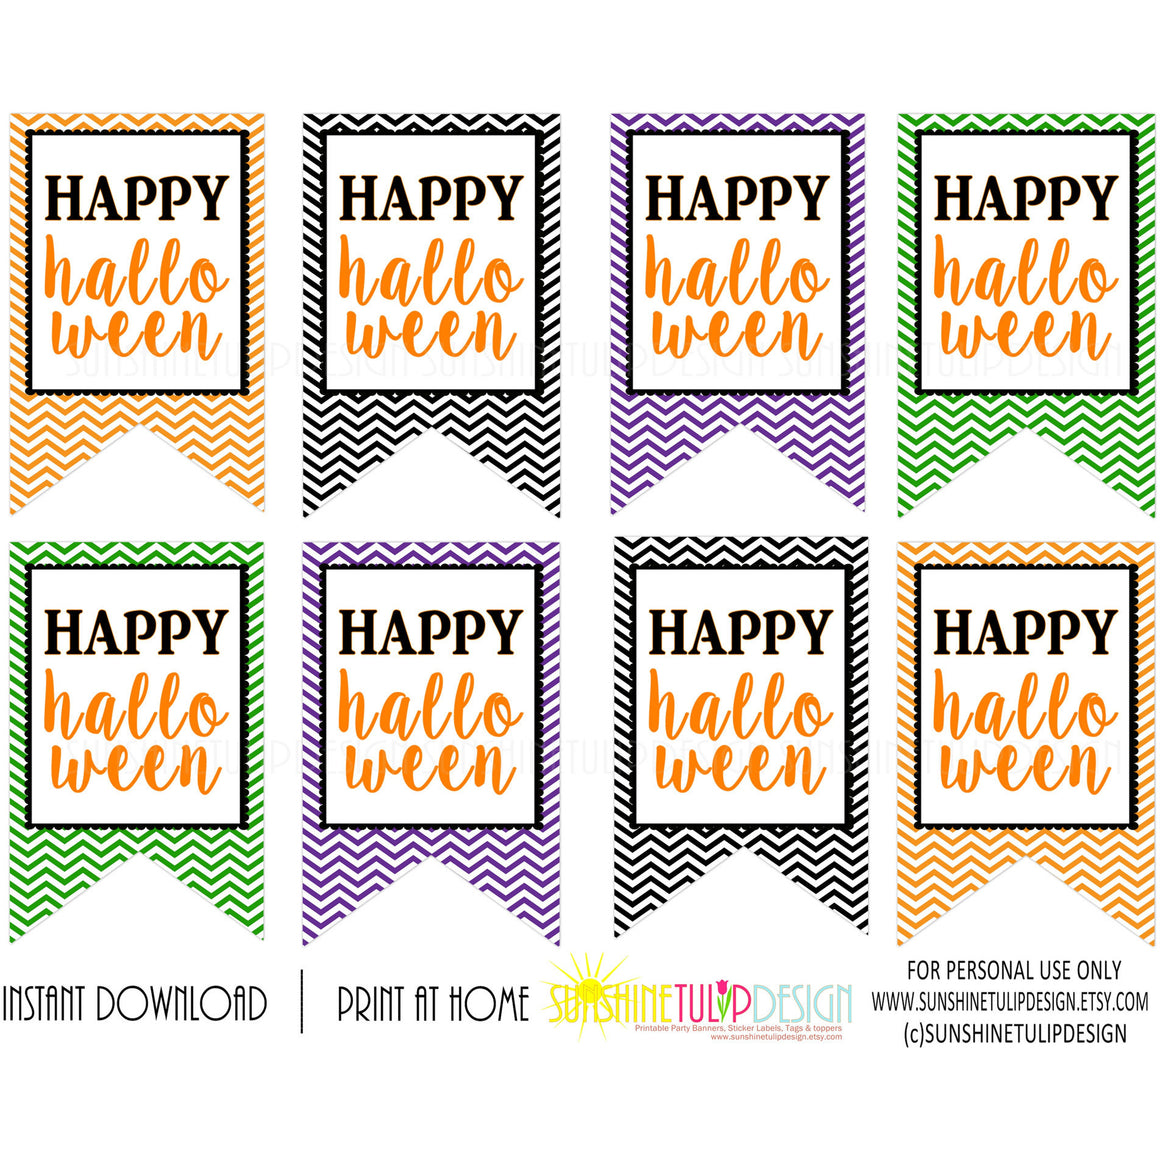 Printable Halloween Gift Tags, Happy Halloween Chevron Favor Gift Tags by SUNSHINETULIPDESIGN - Sunshinetulipdesign